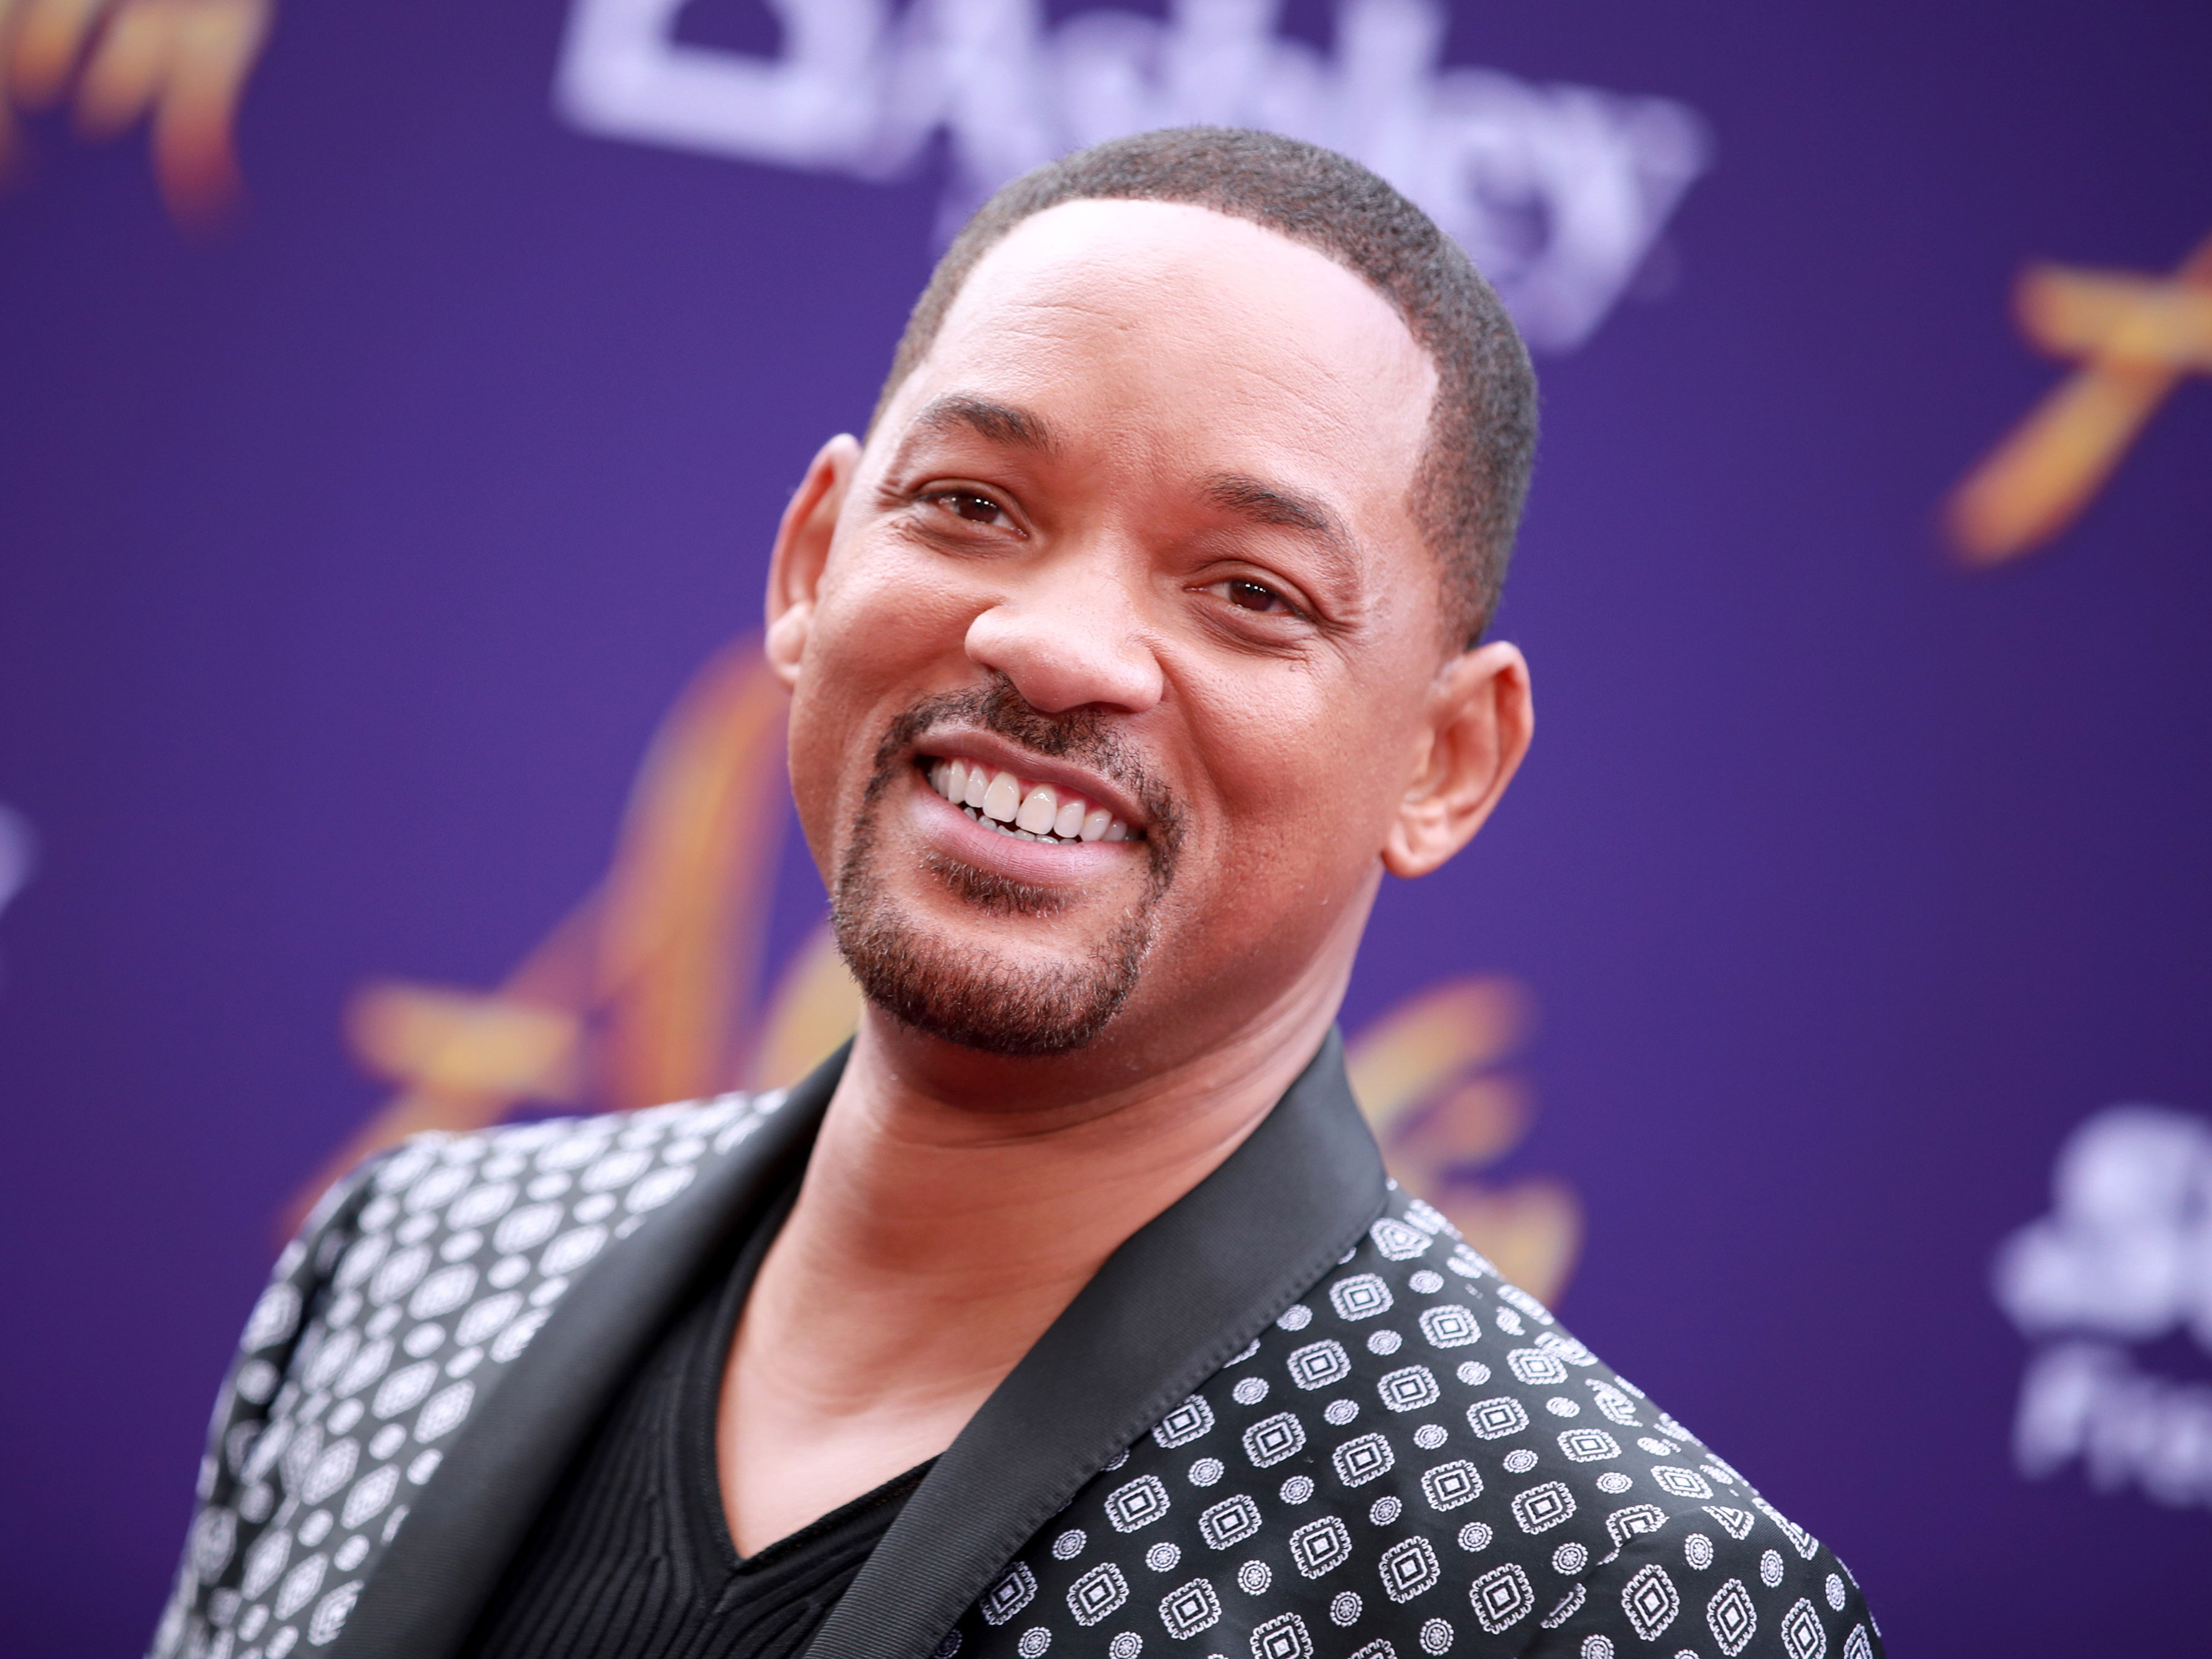 Will Smith goes on drastic diet after reaching his heaviest weight ever and being nicknamed 'pudge muffin' by his family